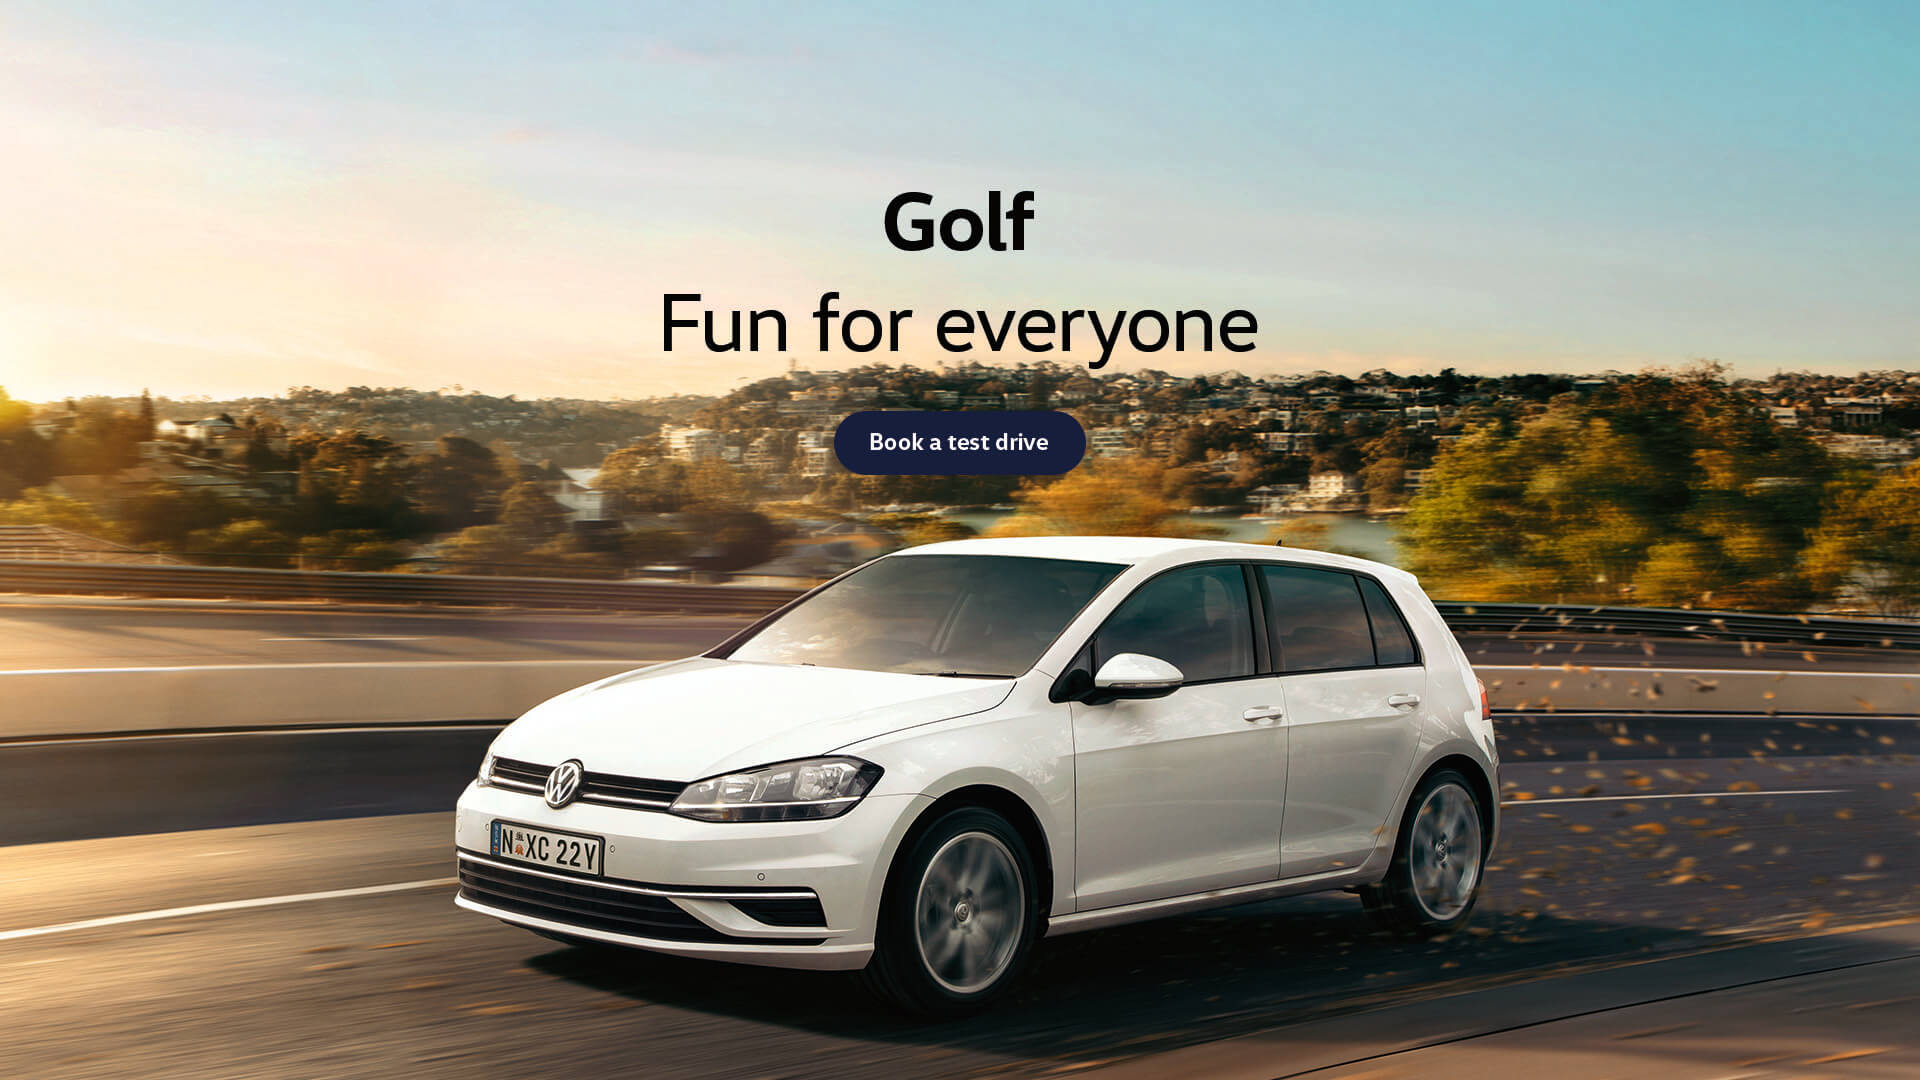 Volkswagen Golf. Fun for everyone. Test drive today at Shepparton Volkswagen